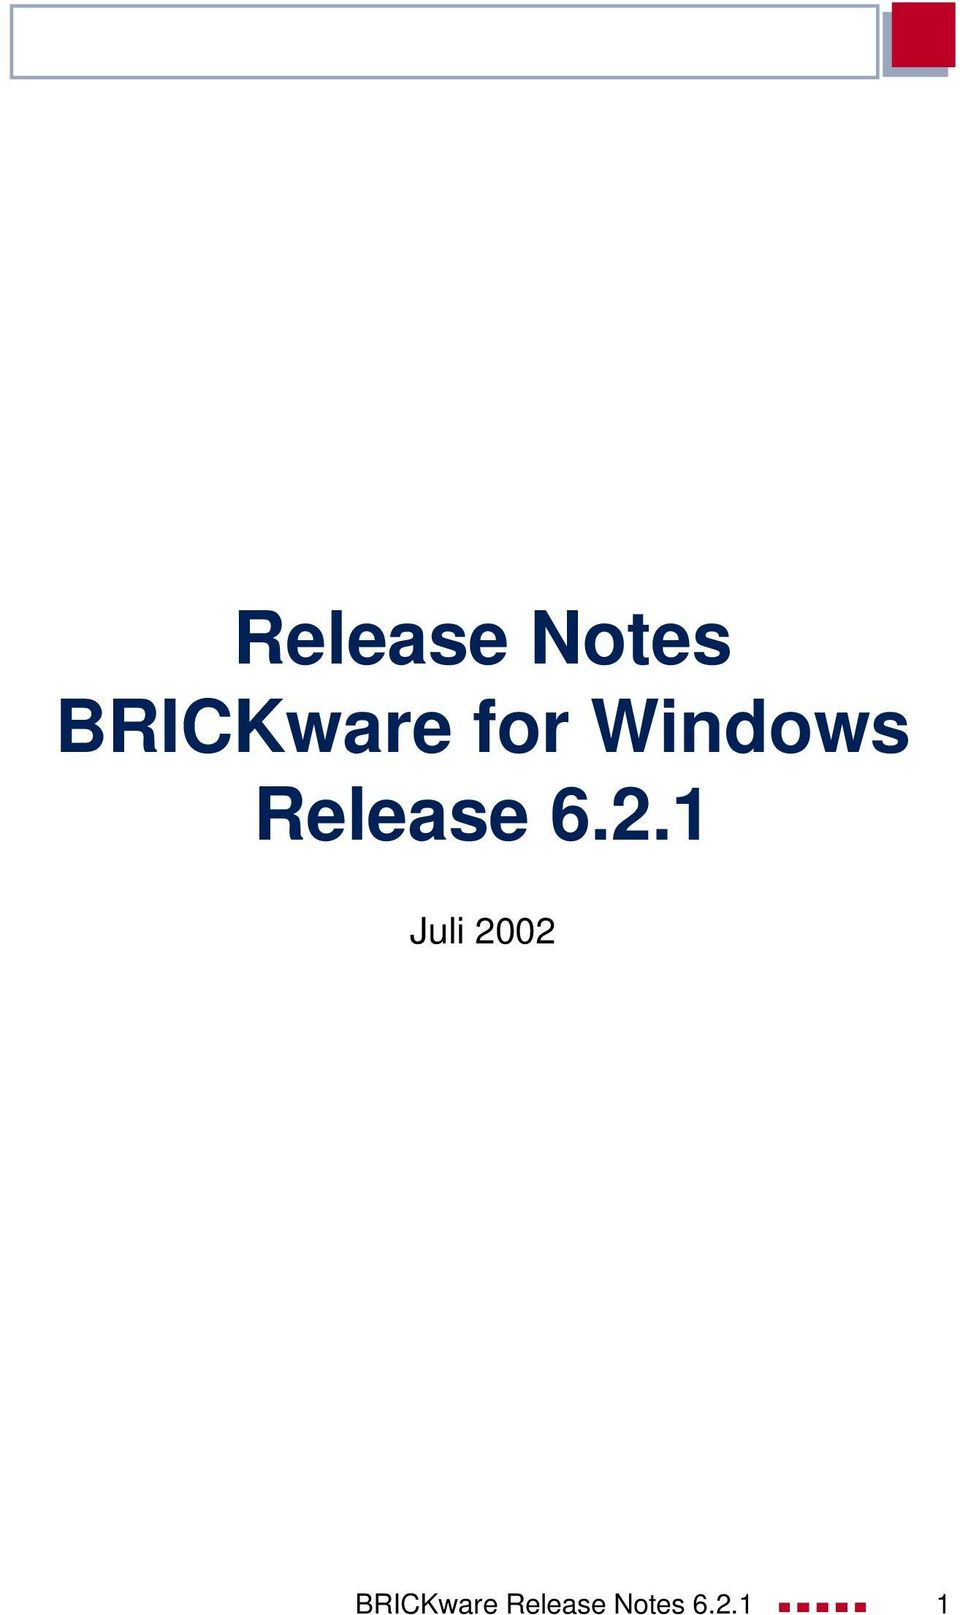 Release 6.2.